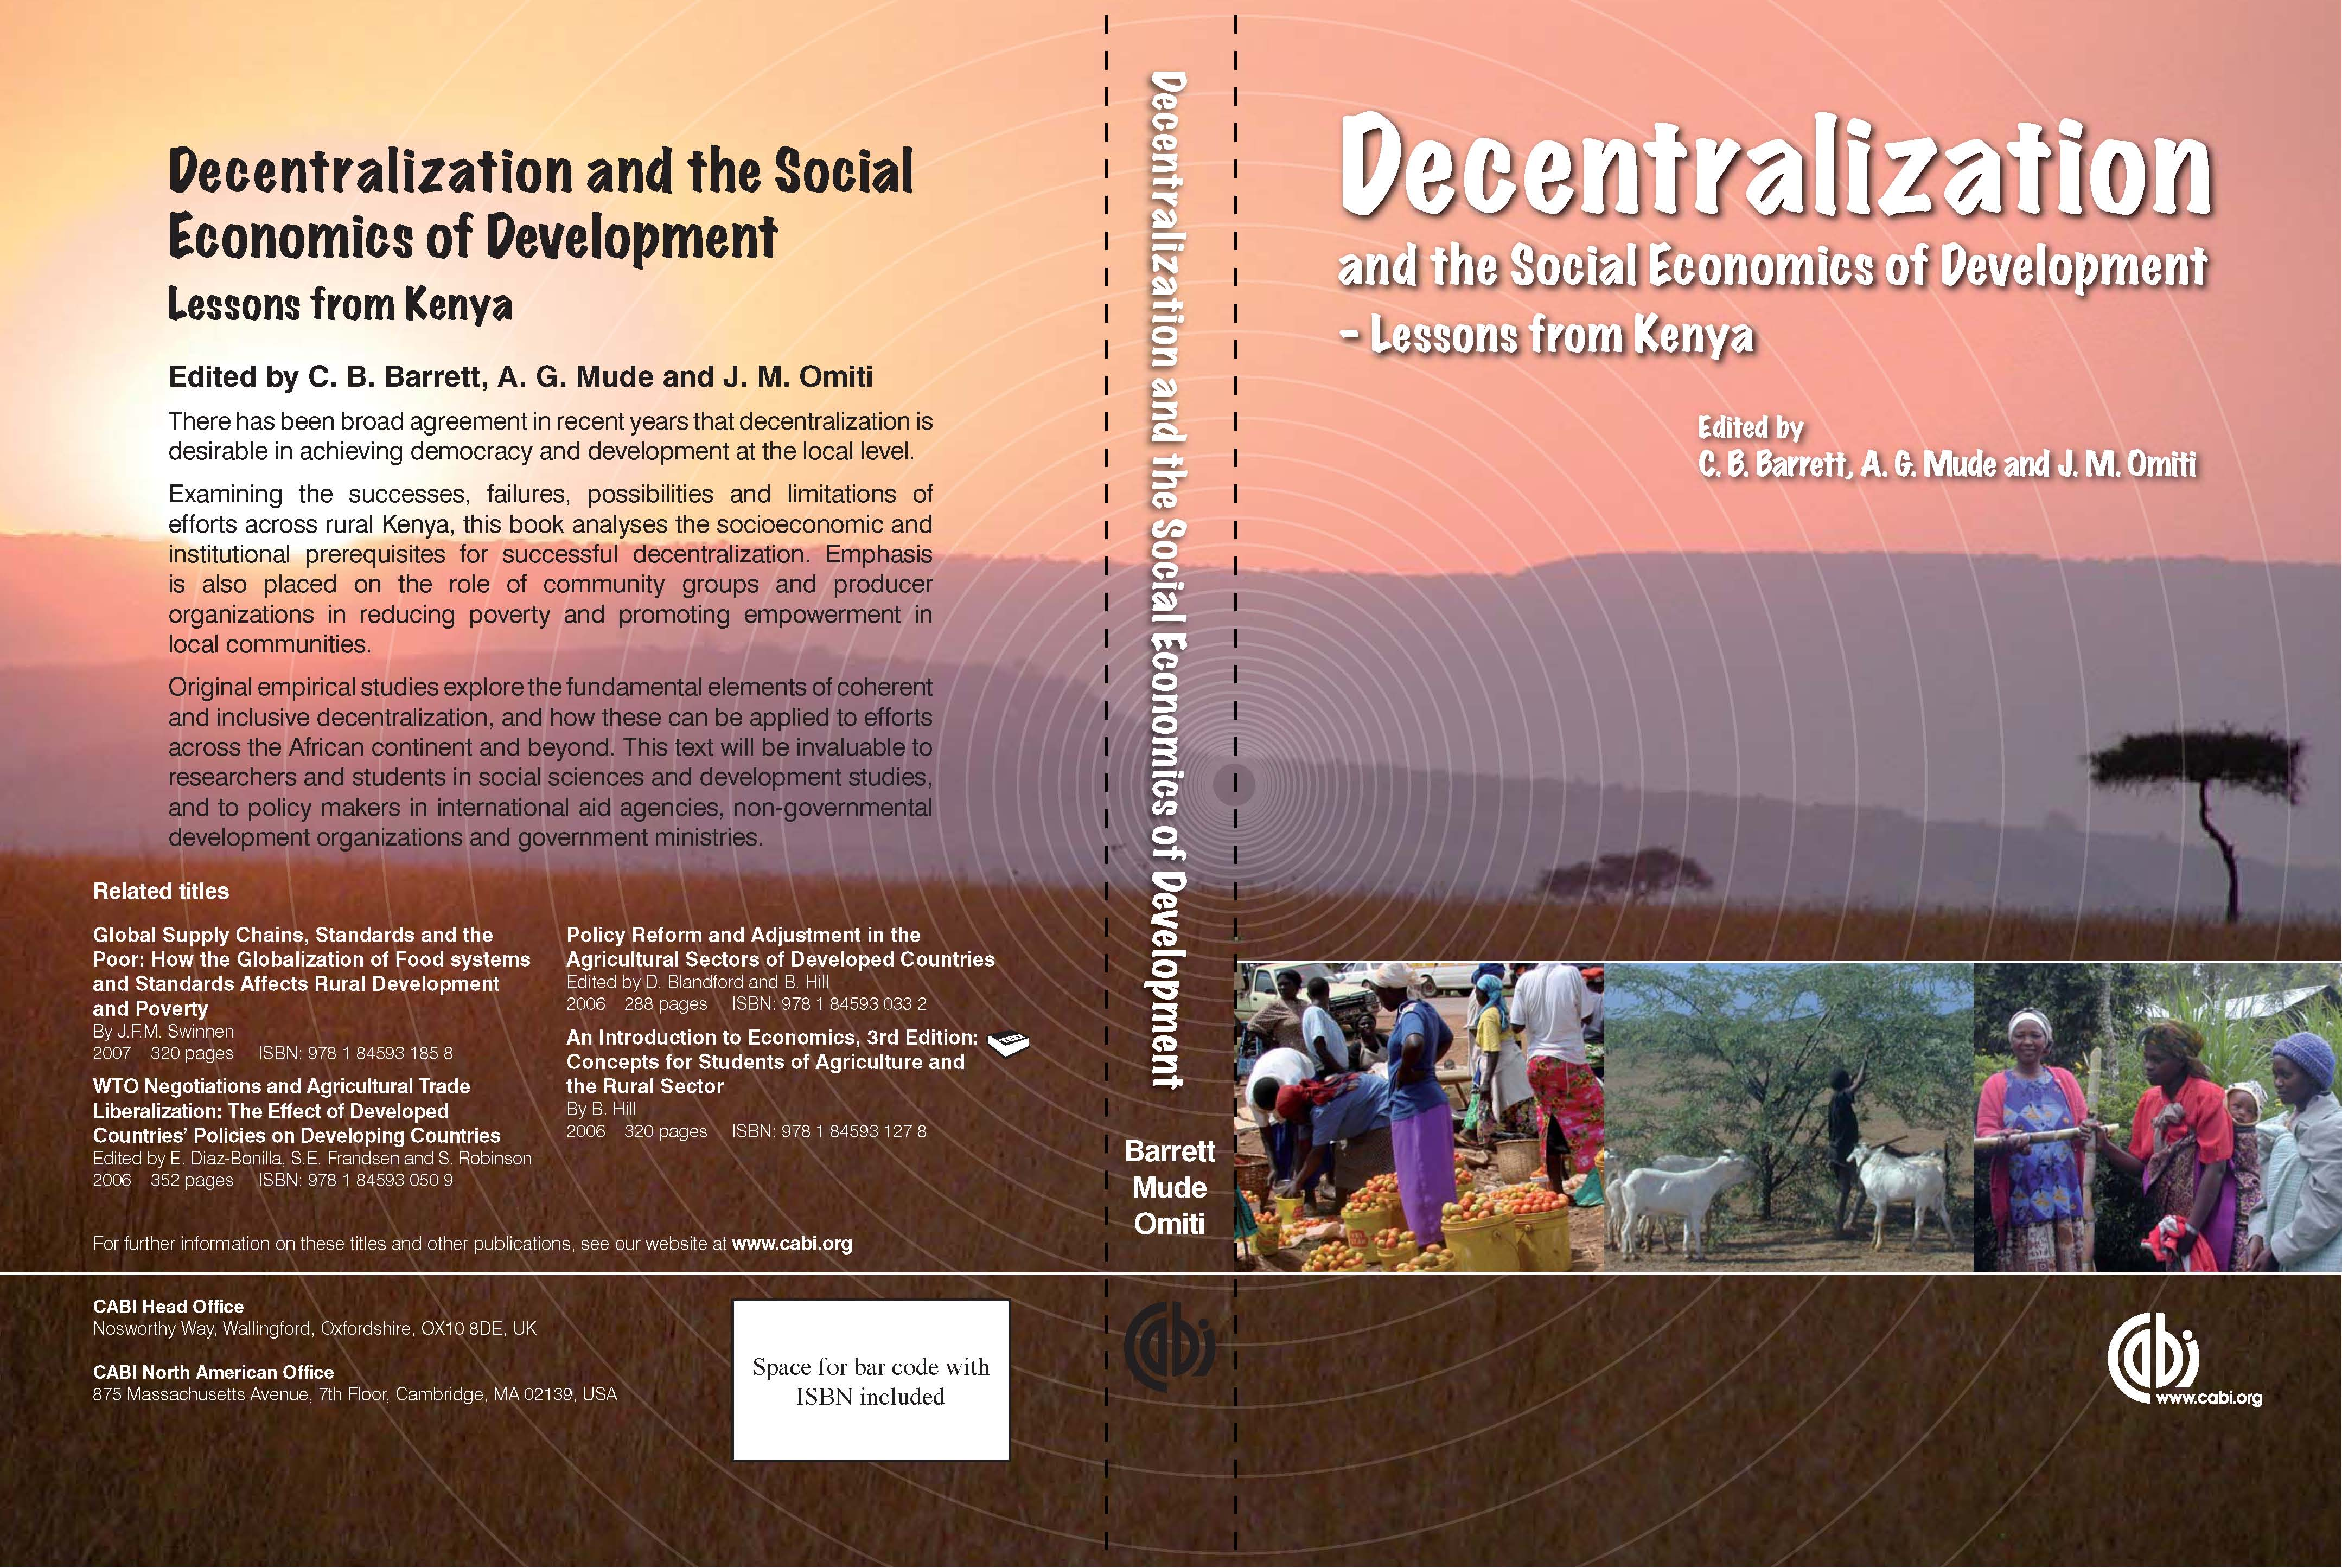 Decentralization and the Social Economics of Development-Lessons from Kenya